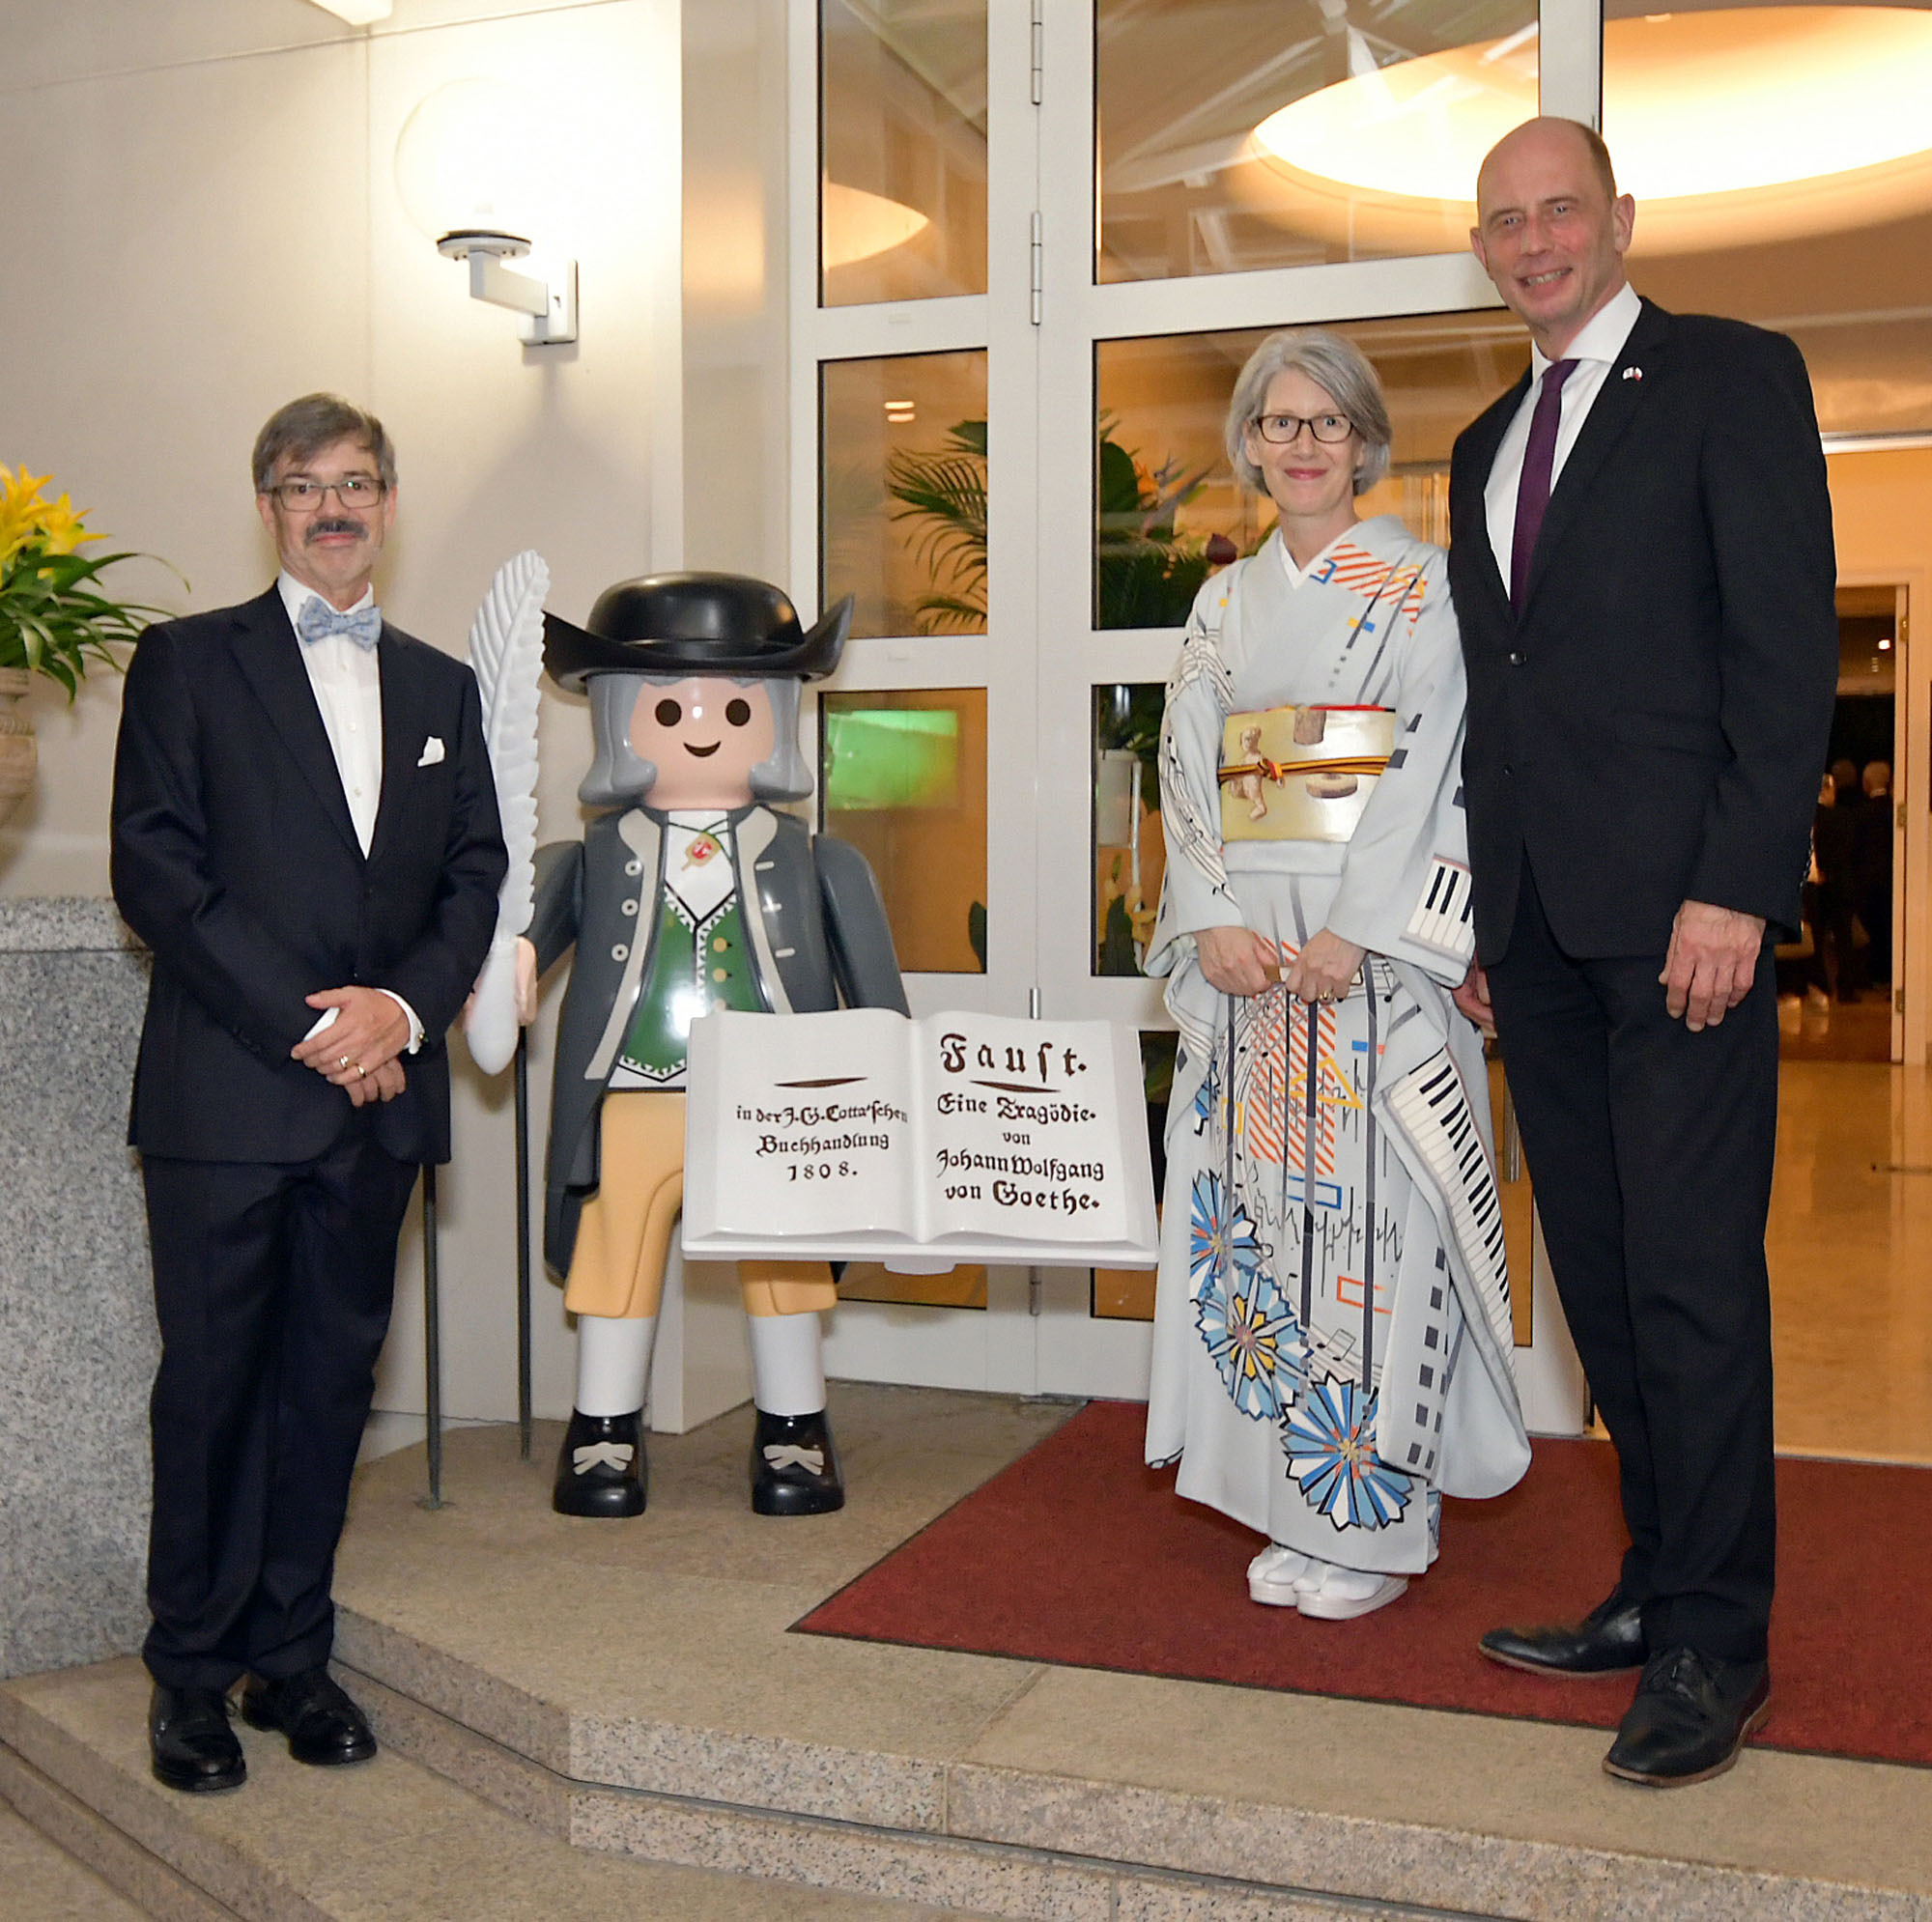 German Ambassador Hans Carl von Werthern (left) and his wife, Elizabeth, pose with Wolfgang Tiefensee, Thuringian Minister for Economic Affairs, Science and Digital Society, during a reception to celebrate the Day of German Unity at the ambassadorial residence in Tokyo on Oct. 3. |   COURTESY OF THE GERMAN EMBASSY